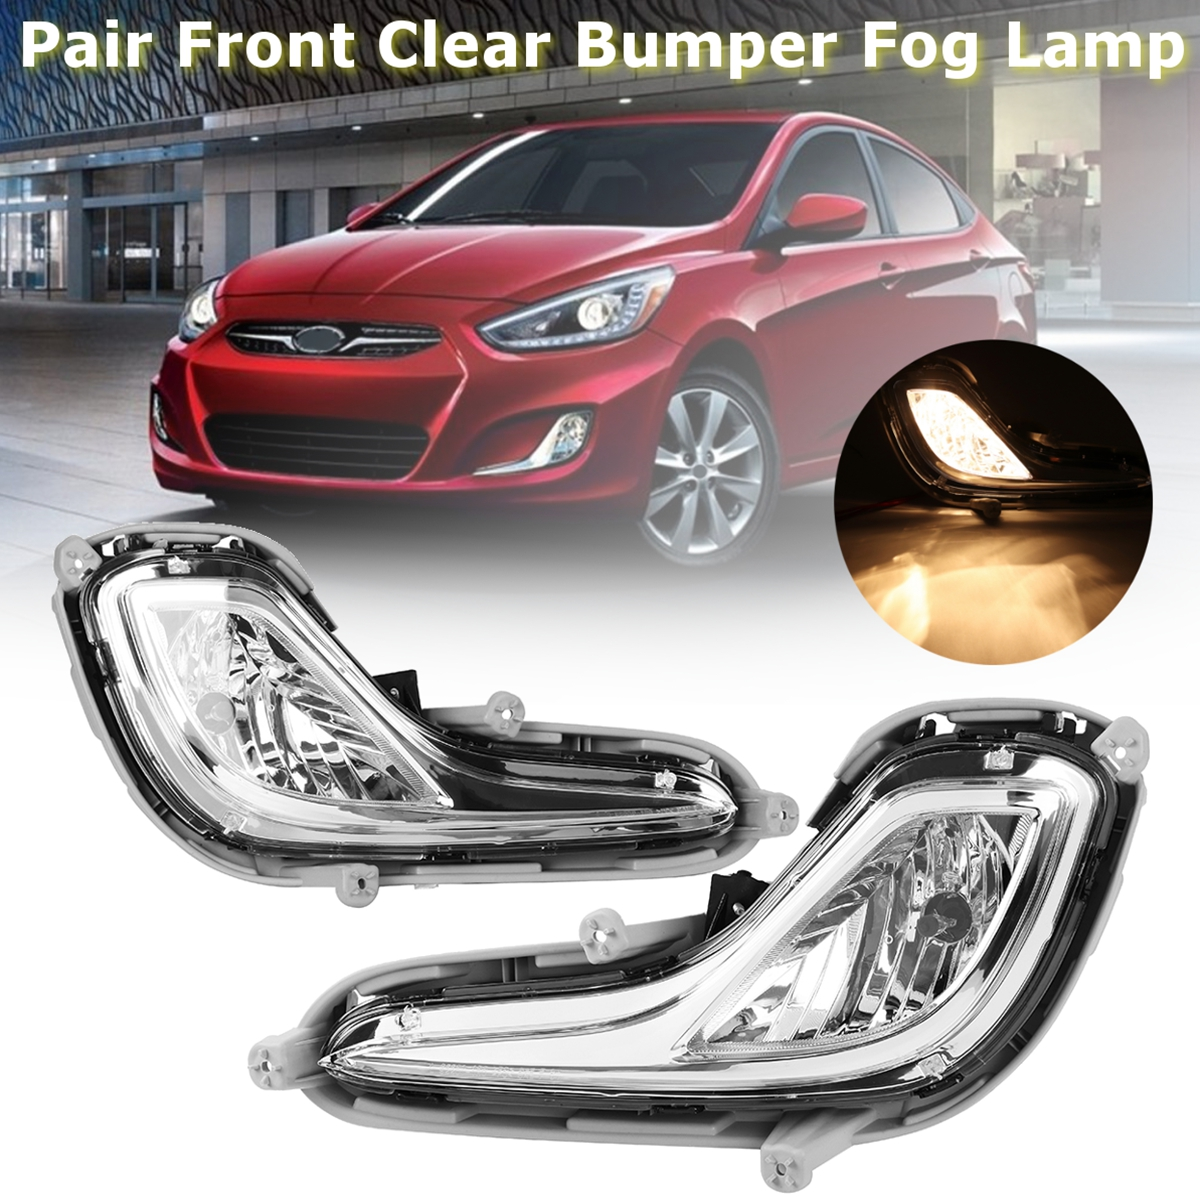 A Pair 12V Left Right Front Clear Bumper Car Fog Lights Lamps for Hyundai Accent 2012-2014